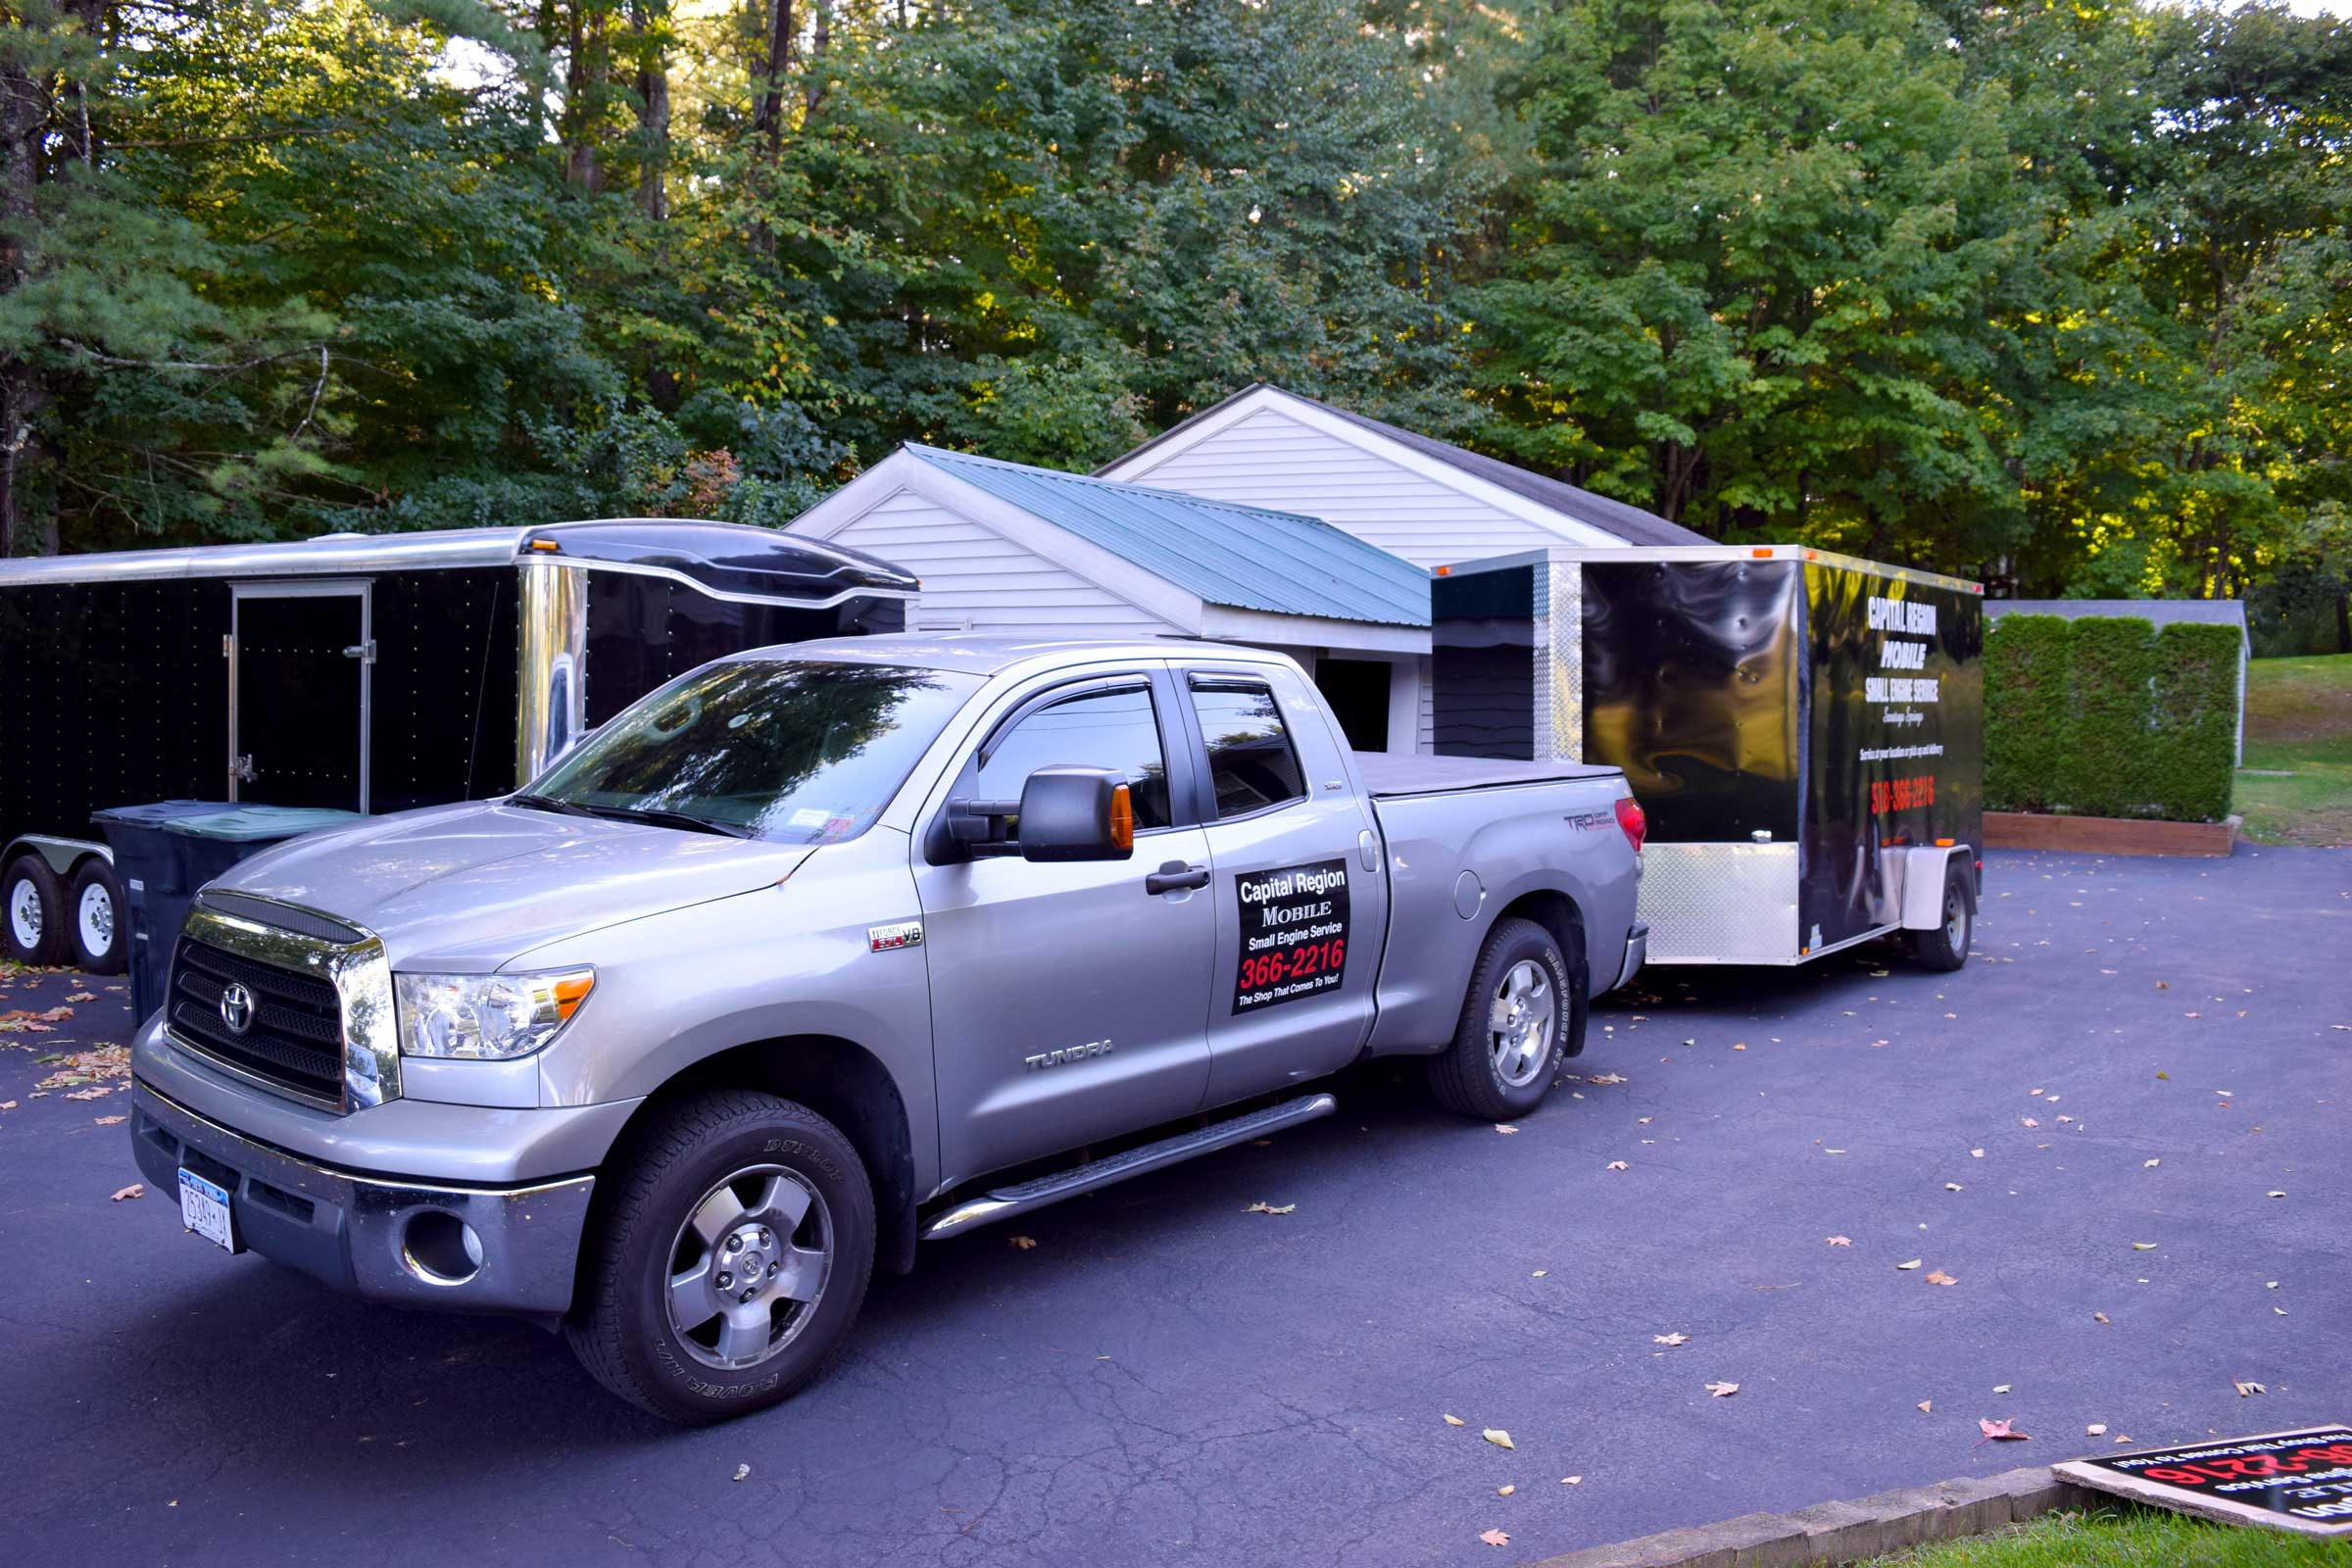 Photo of Capital Region Mobile Small Engine Service truck with magnet graphic created by SillyCar Design.